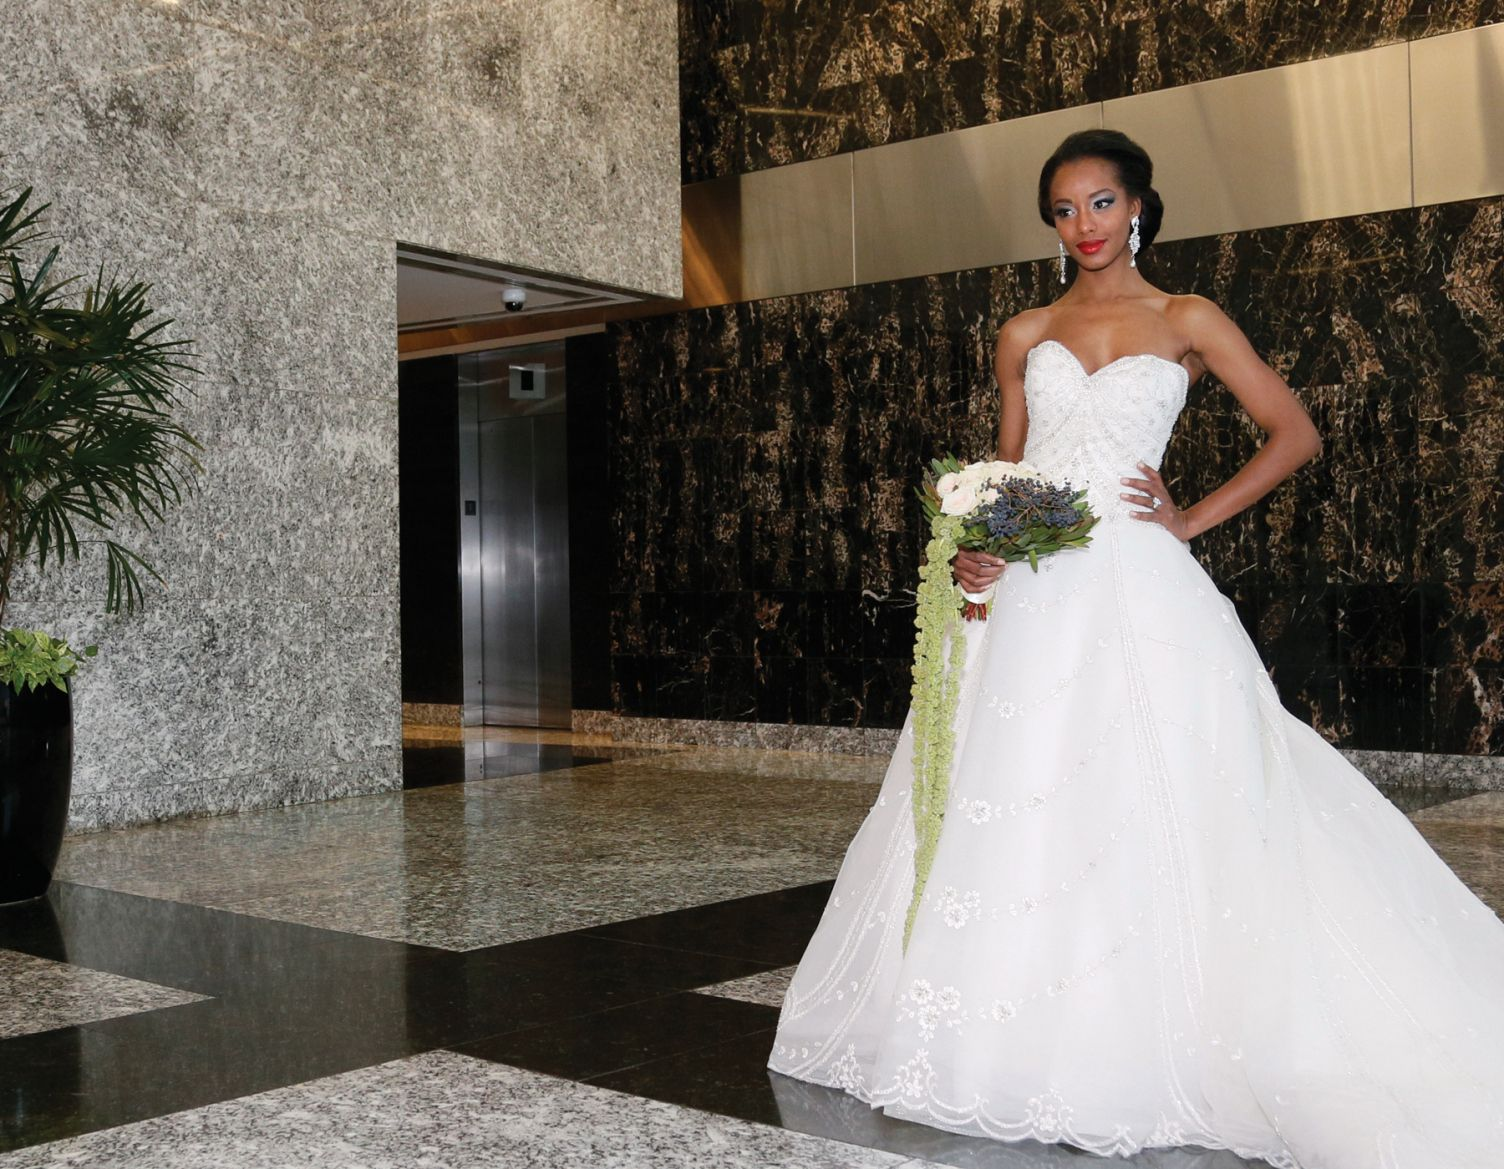 New Jersey Wedding Dresses - Women\'s Dresses for Wedding Guest Check ...